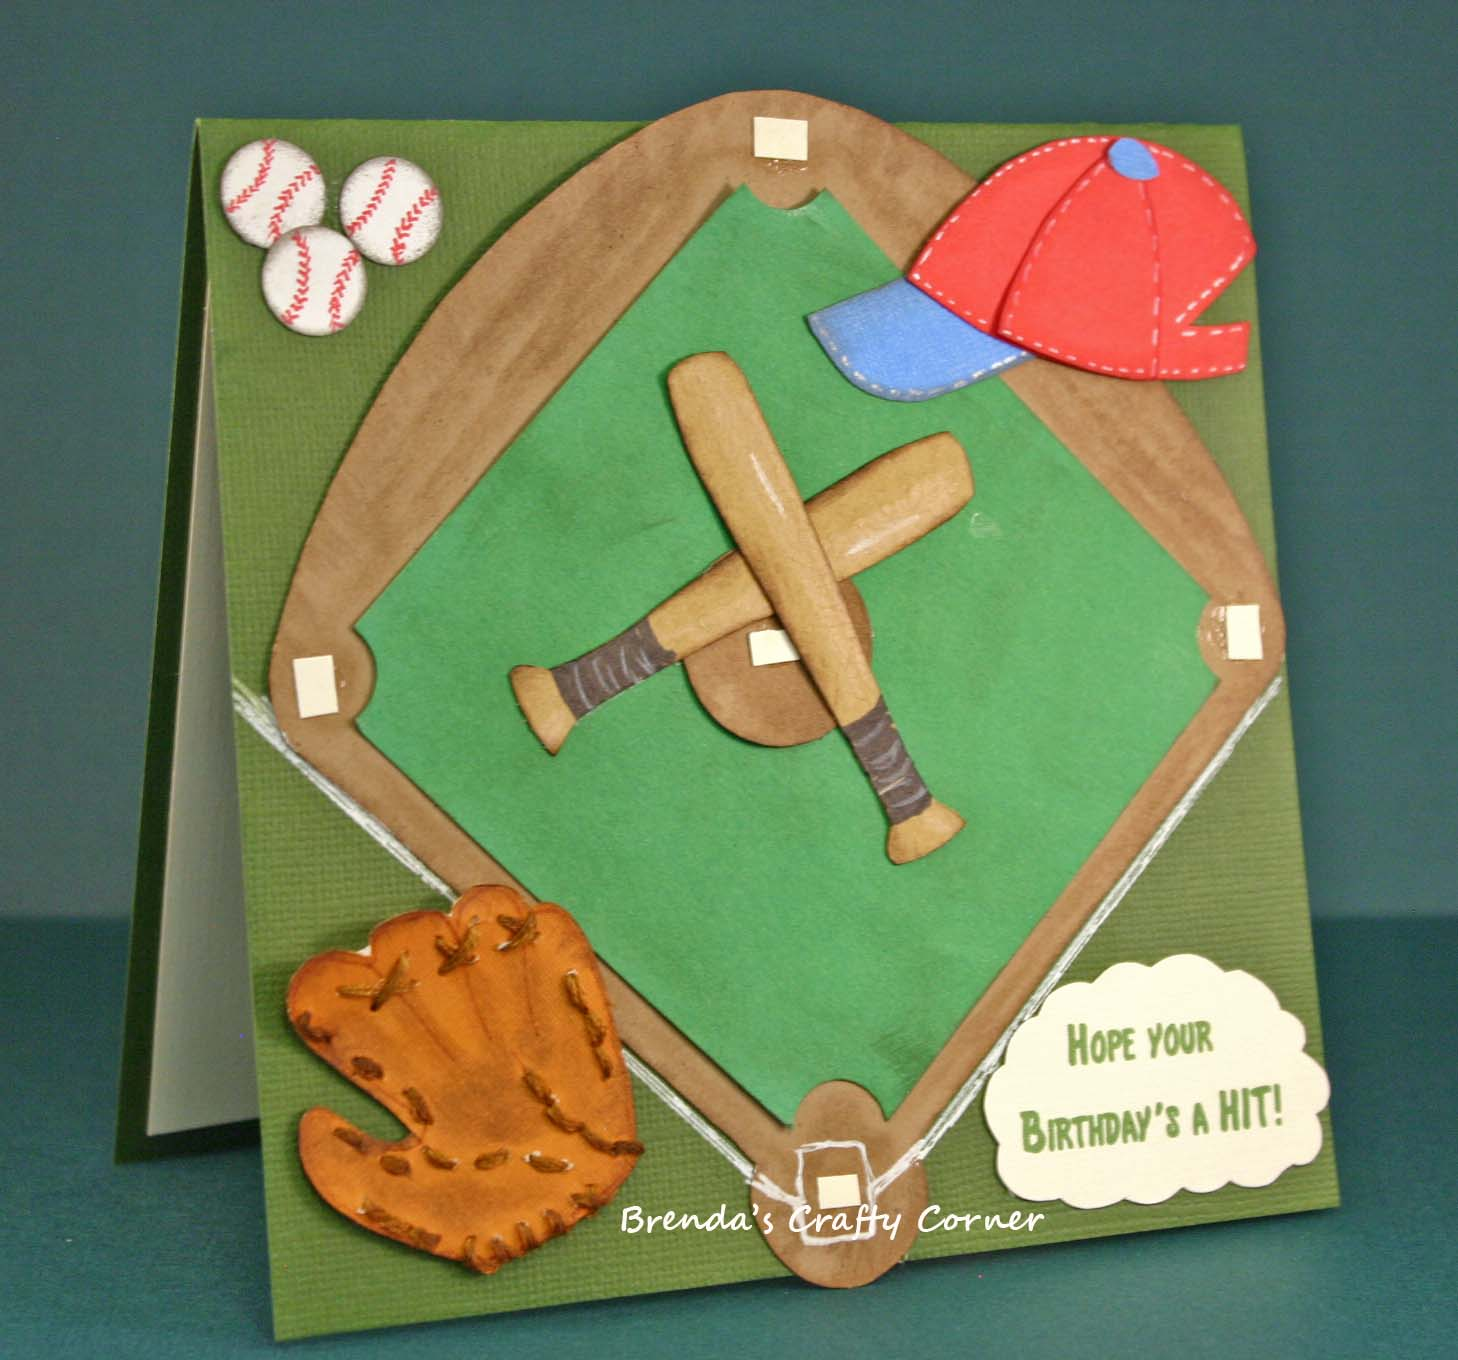 Brendas Crafty Corner Baseball Birthday Card